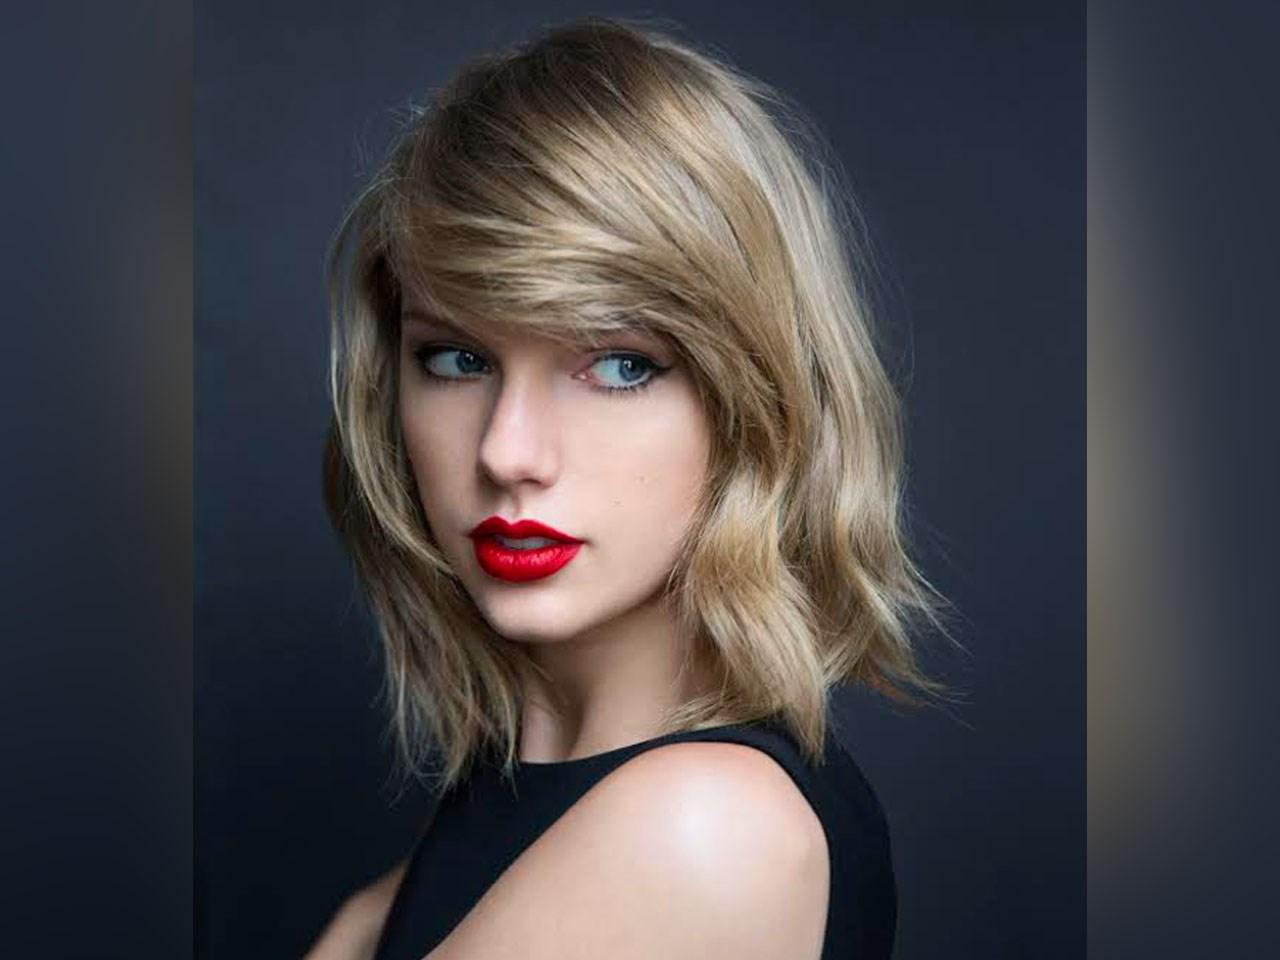 PHOTO: MGN/Taylor Swift/Facebook